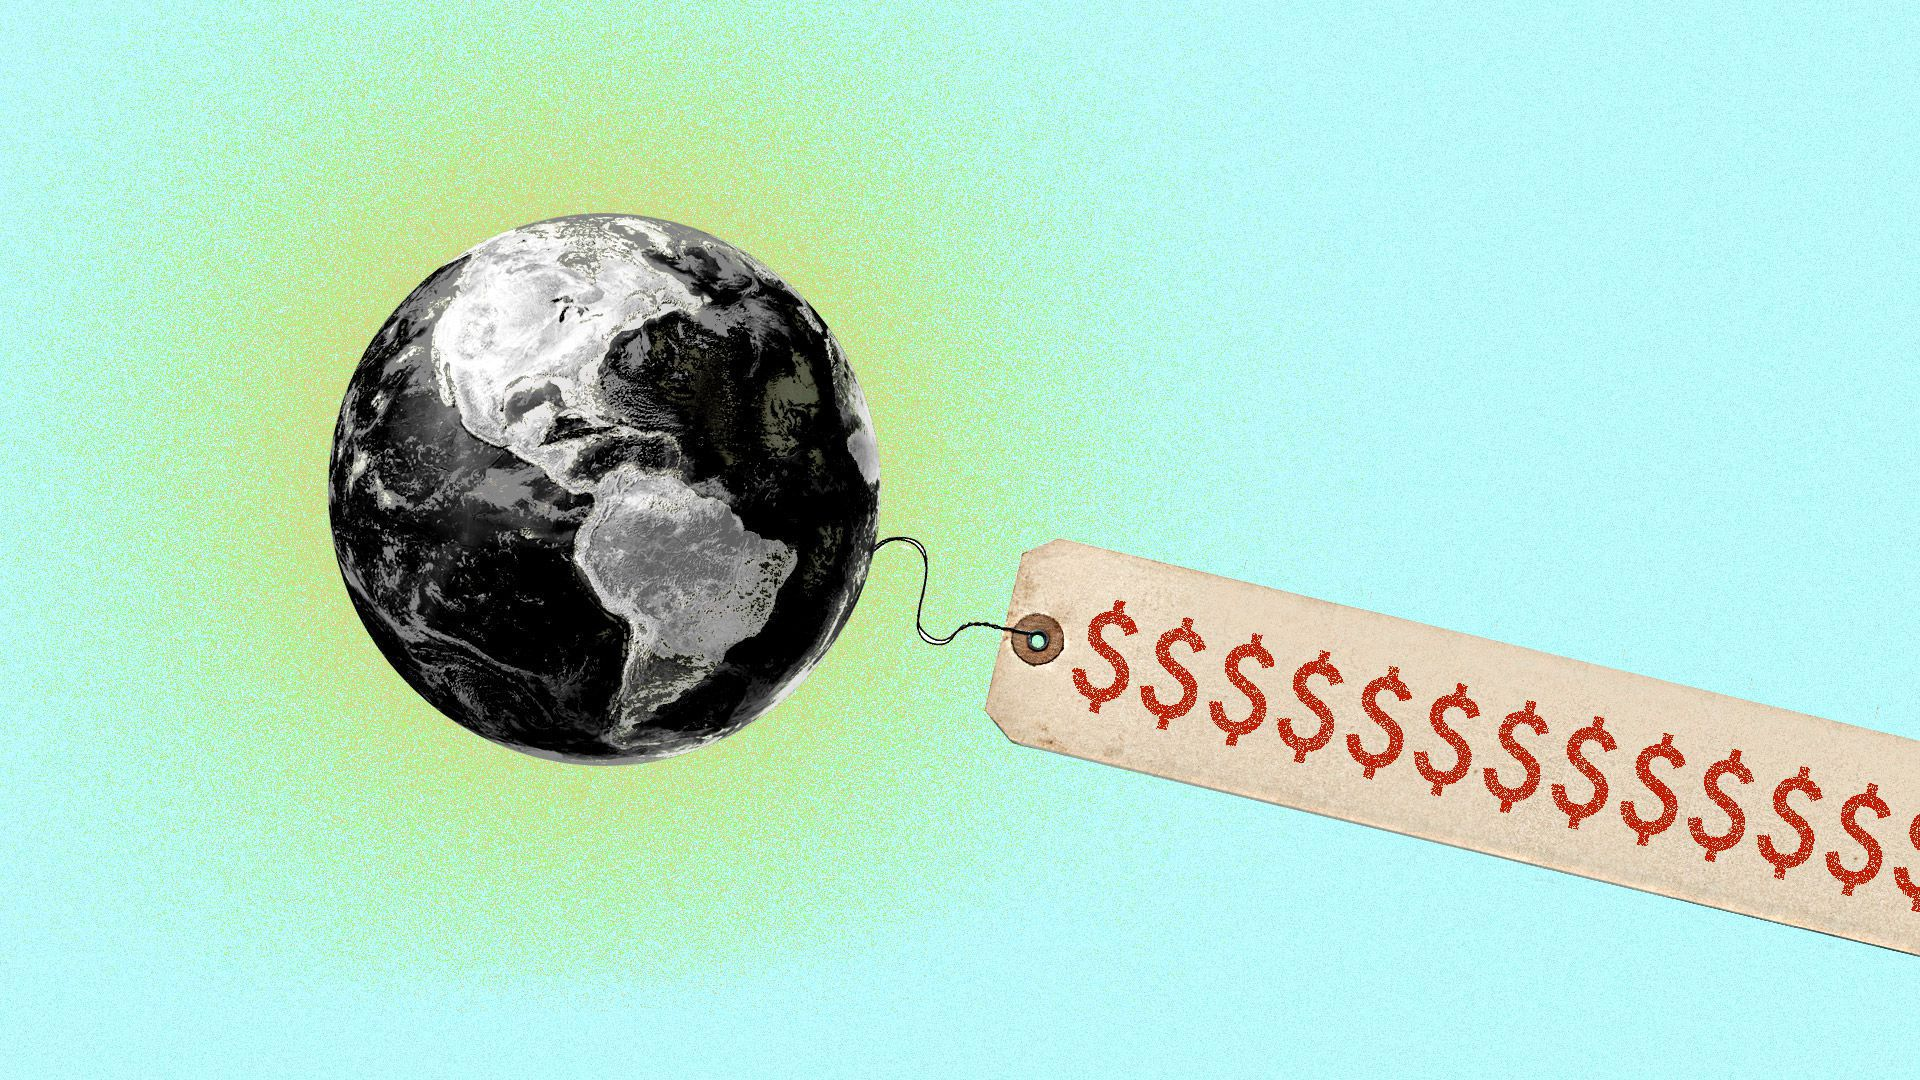 In this illustration, a large price tag dangles from a black and white still image of the earth.